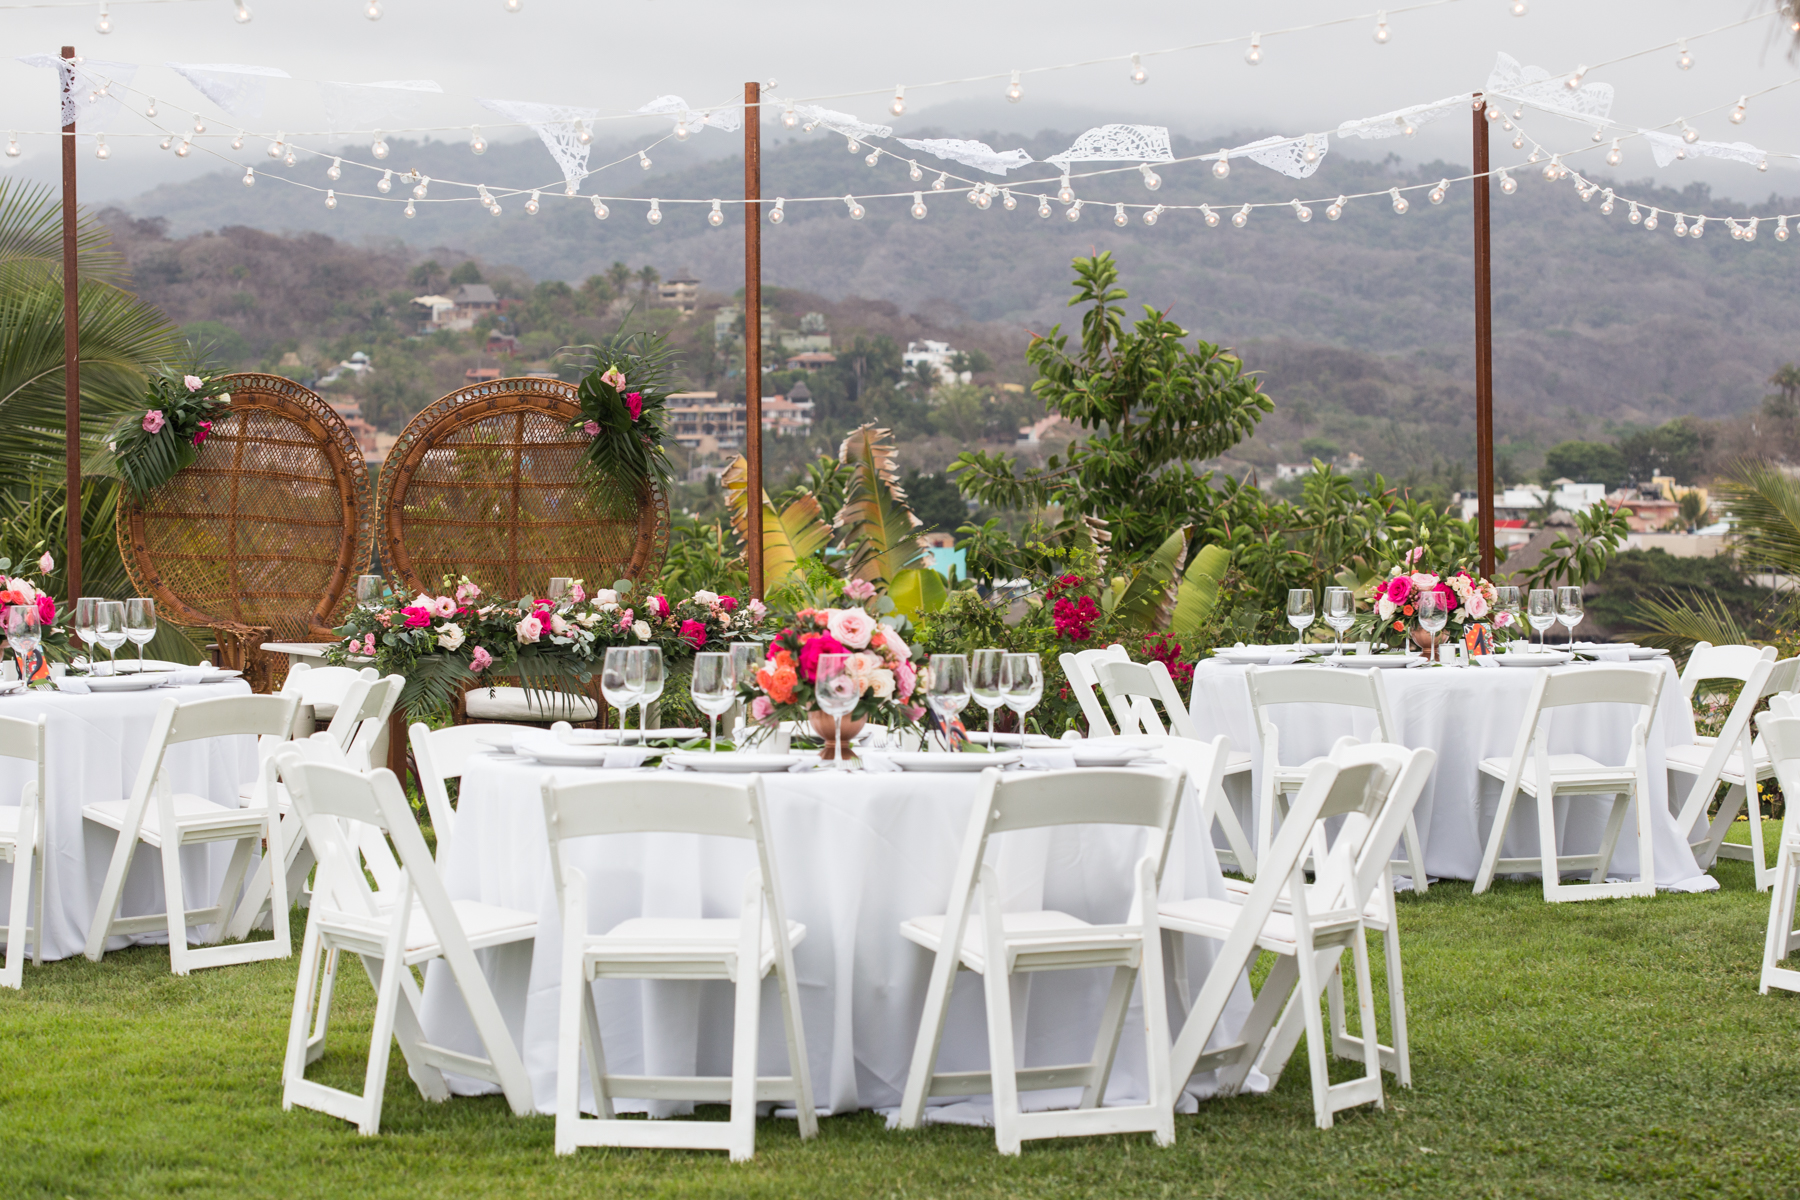 Circular tables for guests and a sweetheart table for the bride and groom with wicker peacock chairs. alternative dinner table setup photos are here